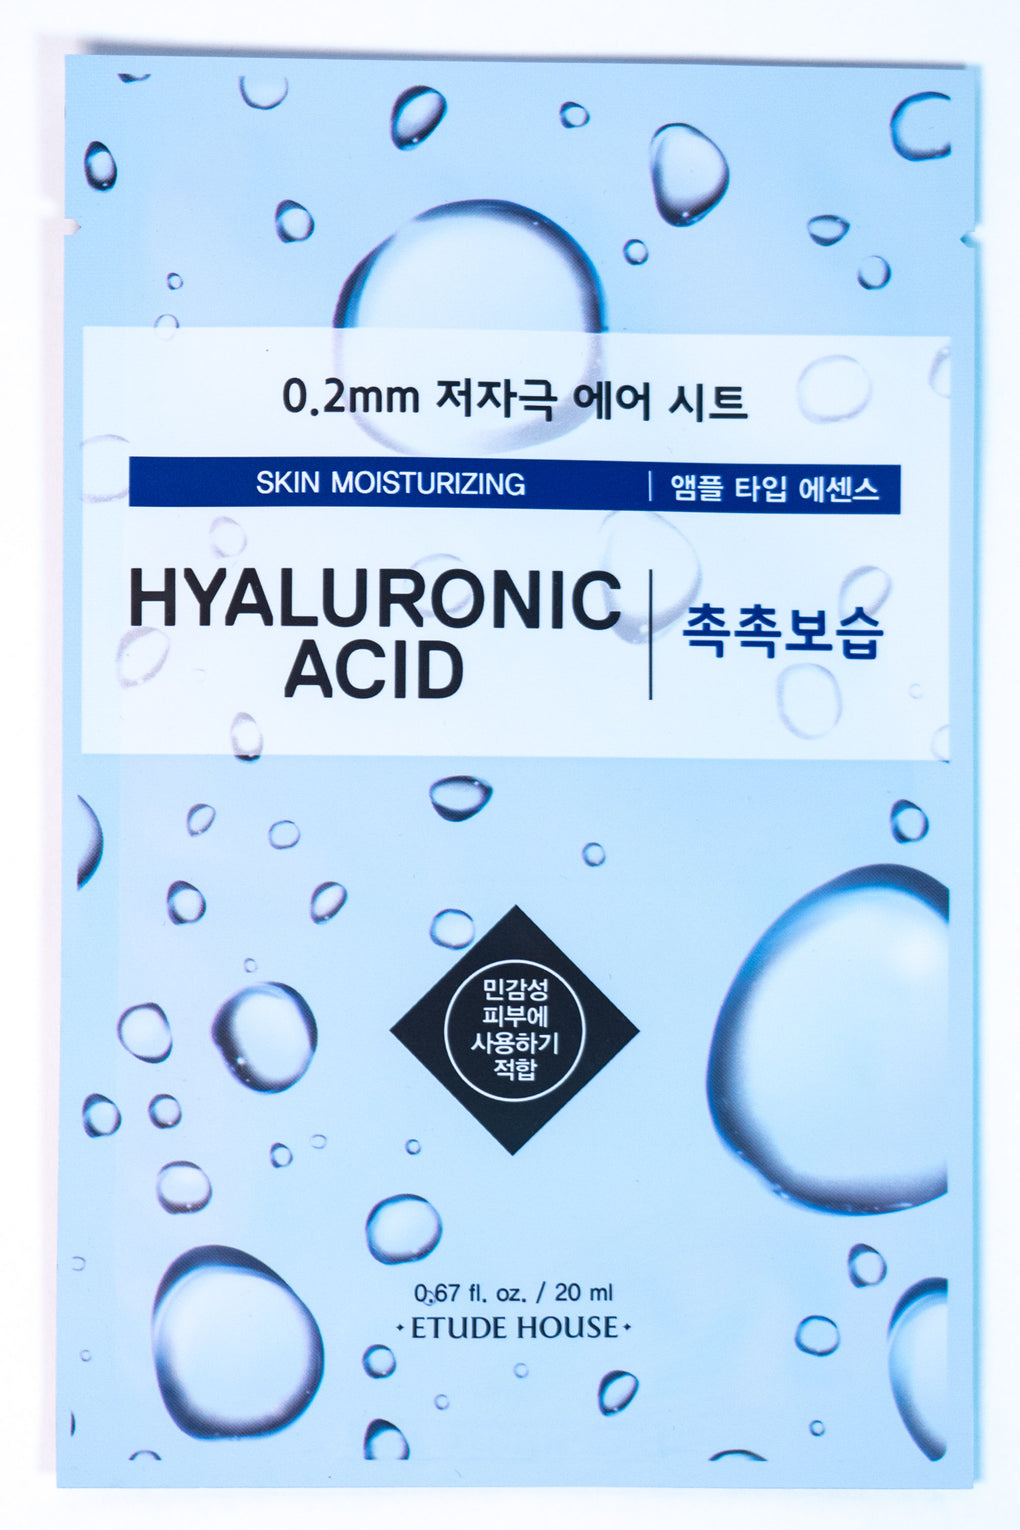 HYALURONIC ACID MOISTURIZING SKIN MASK